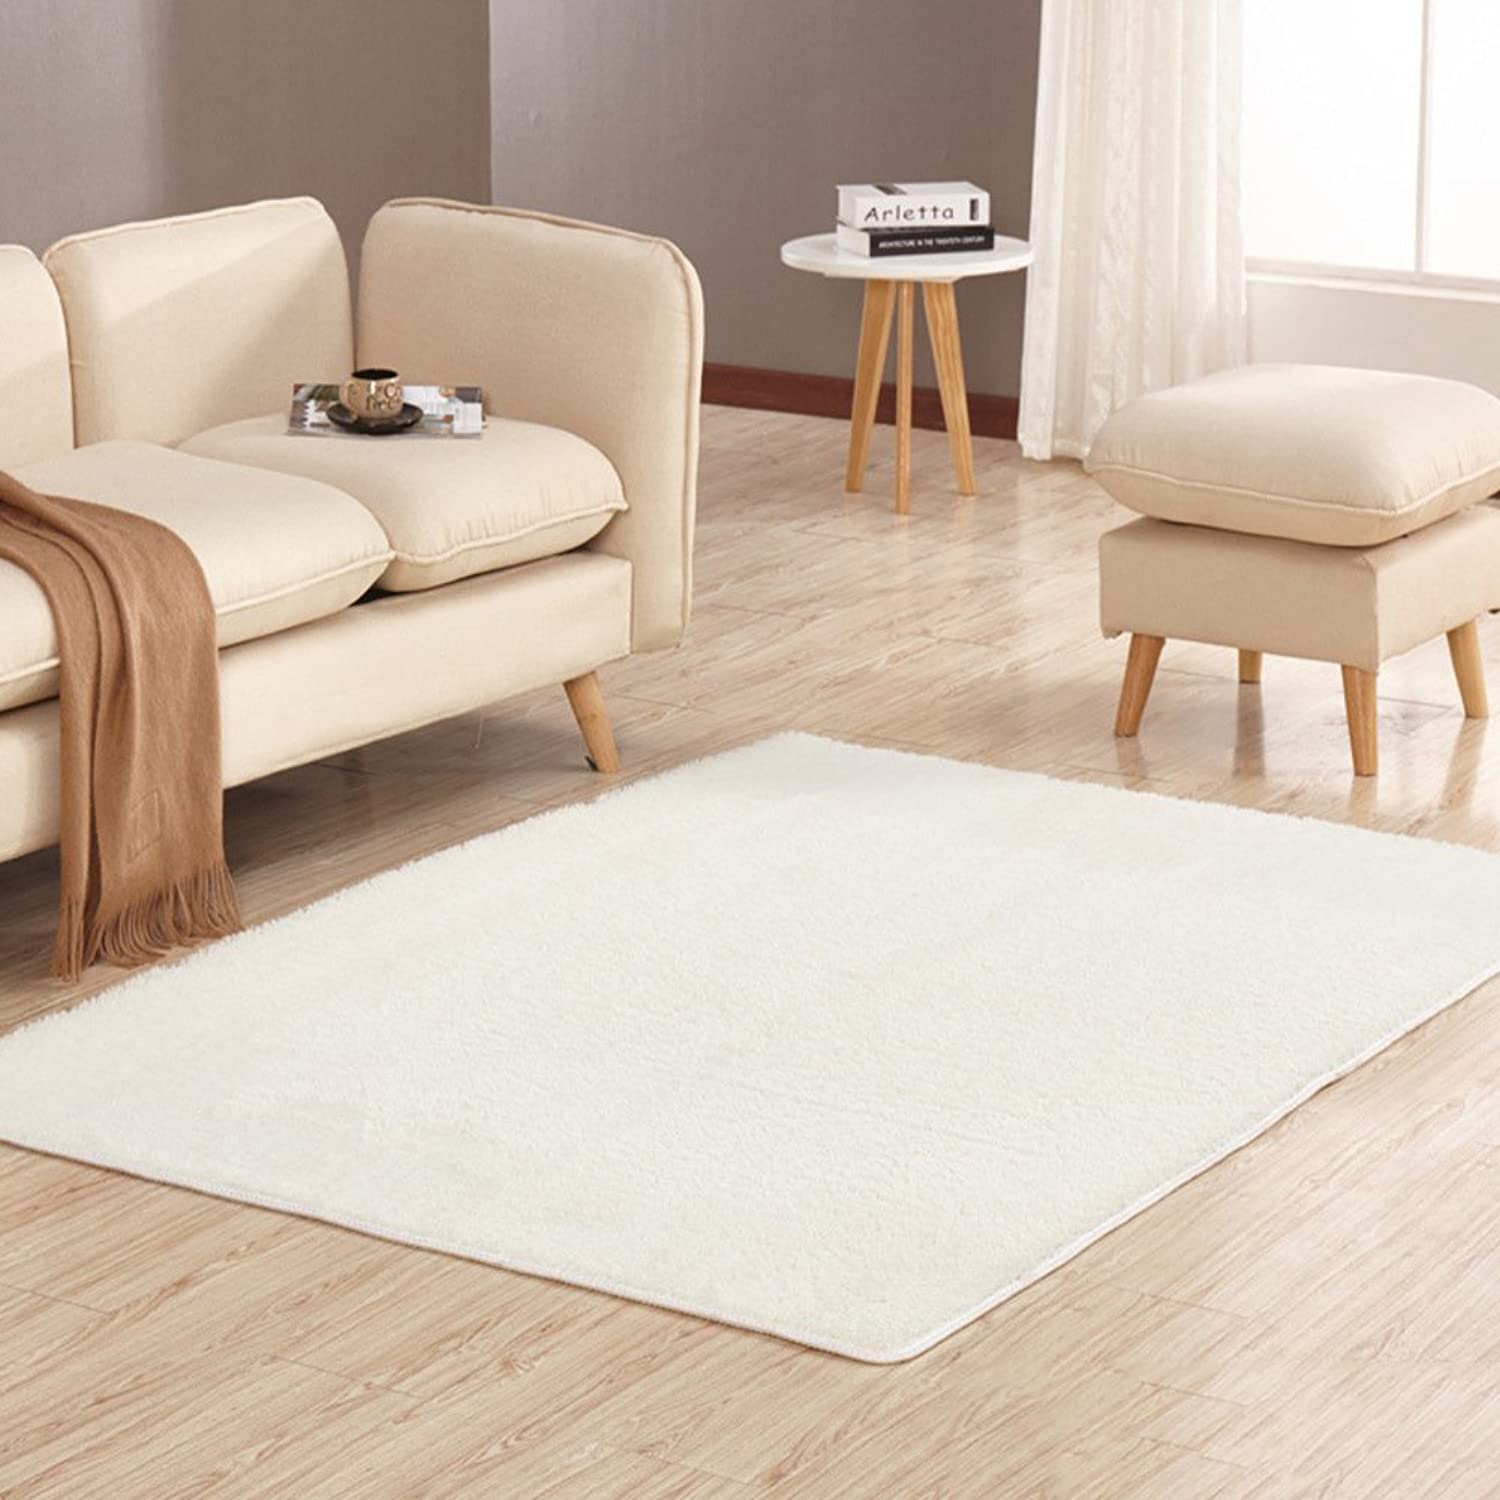 Solid color plush mat Living room Bedroom mats Anti-skidding Fastness Don't drop the mat.-D 100x160cm(39x63inch)